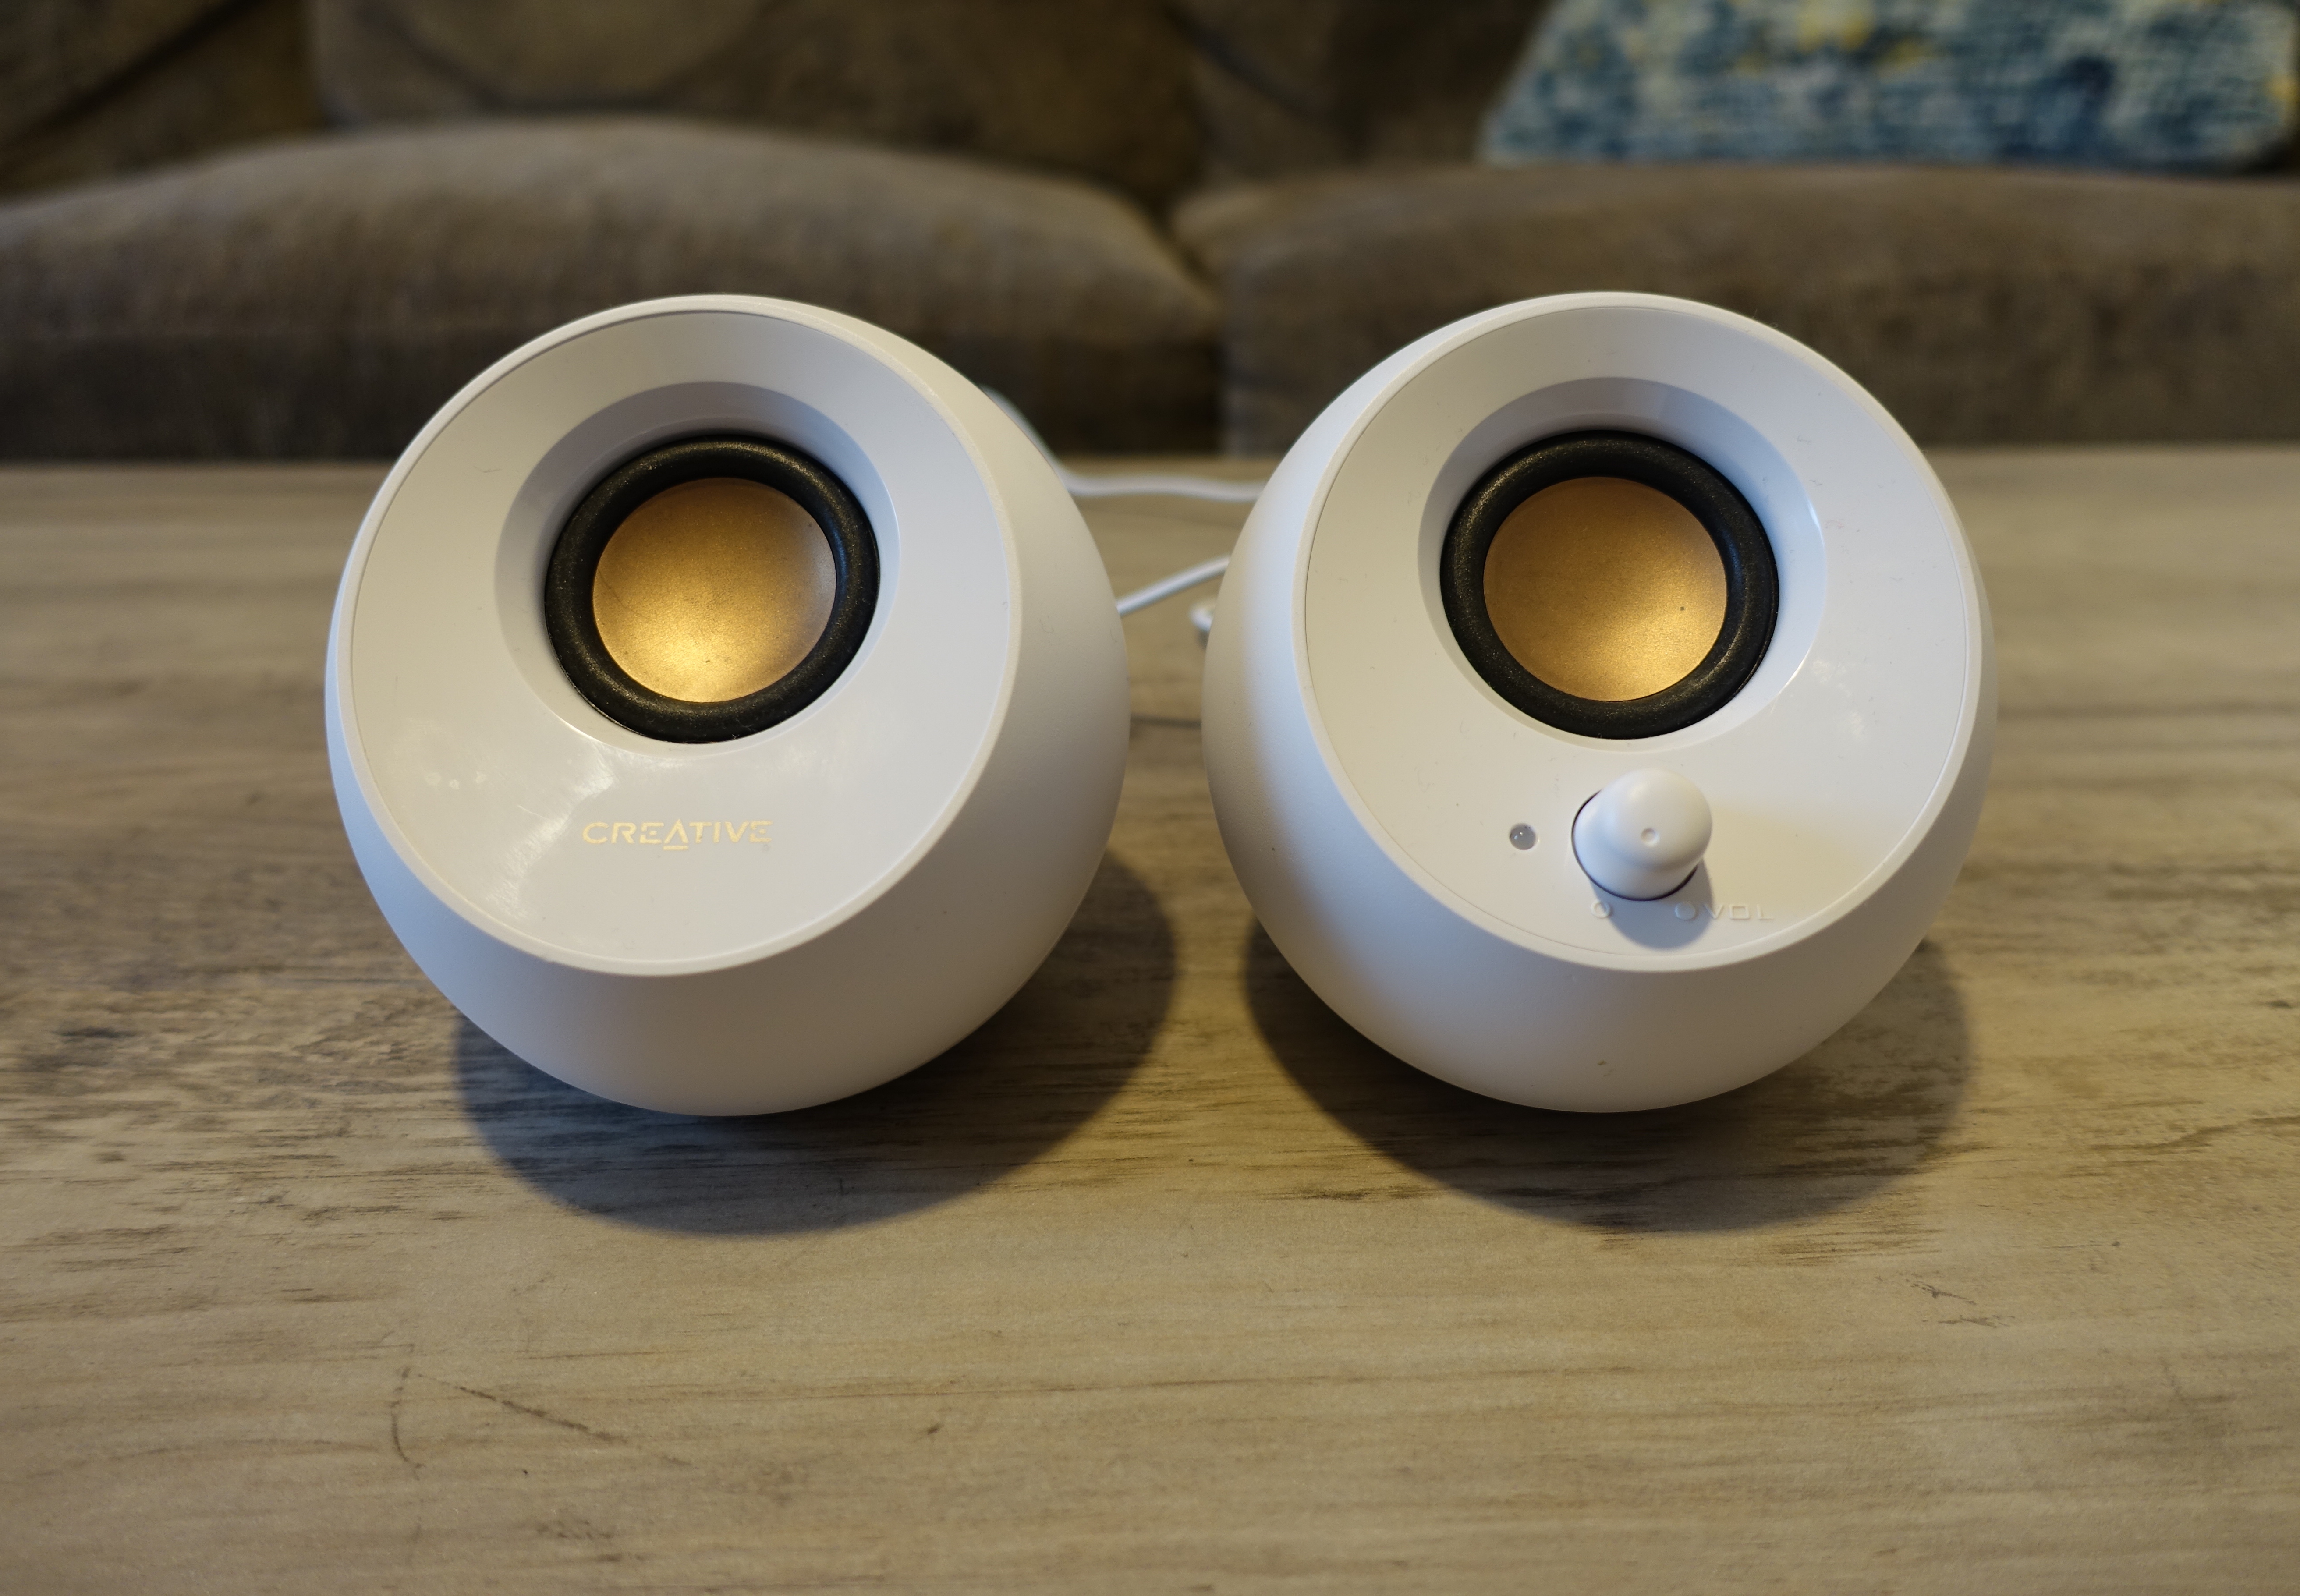 Creative's Pebble desktop speakers offer good sound for not a lot of money.